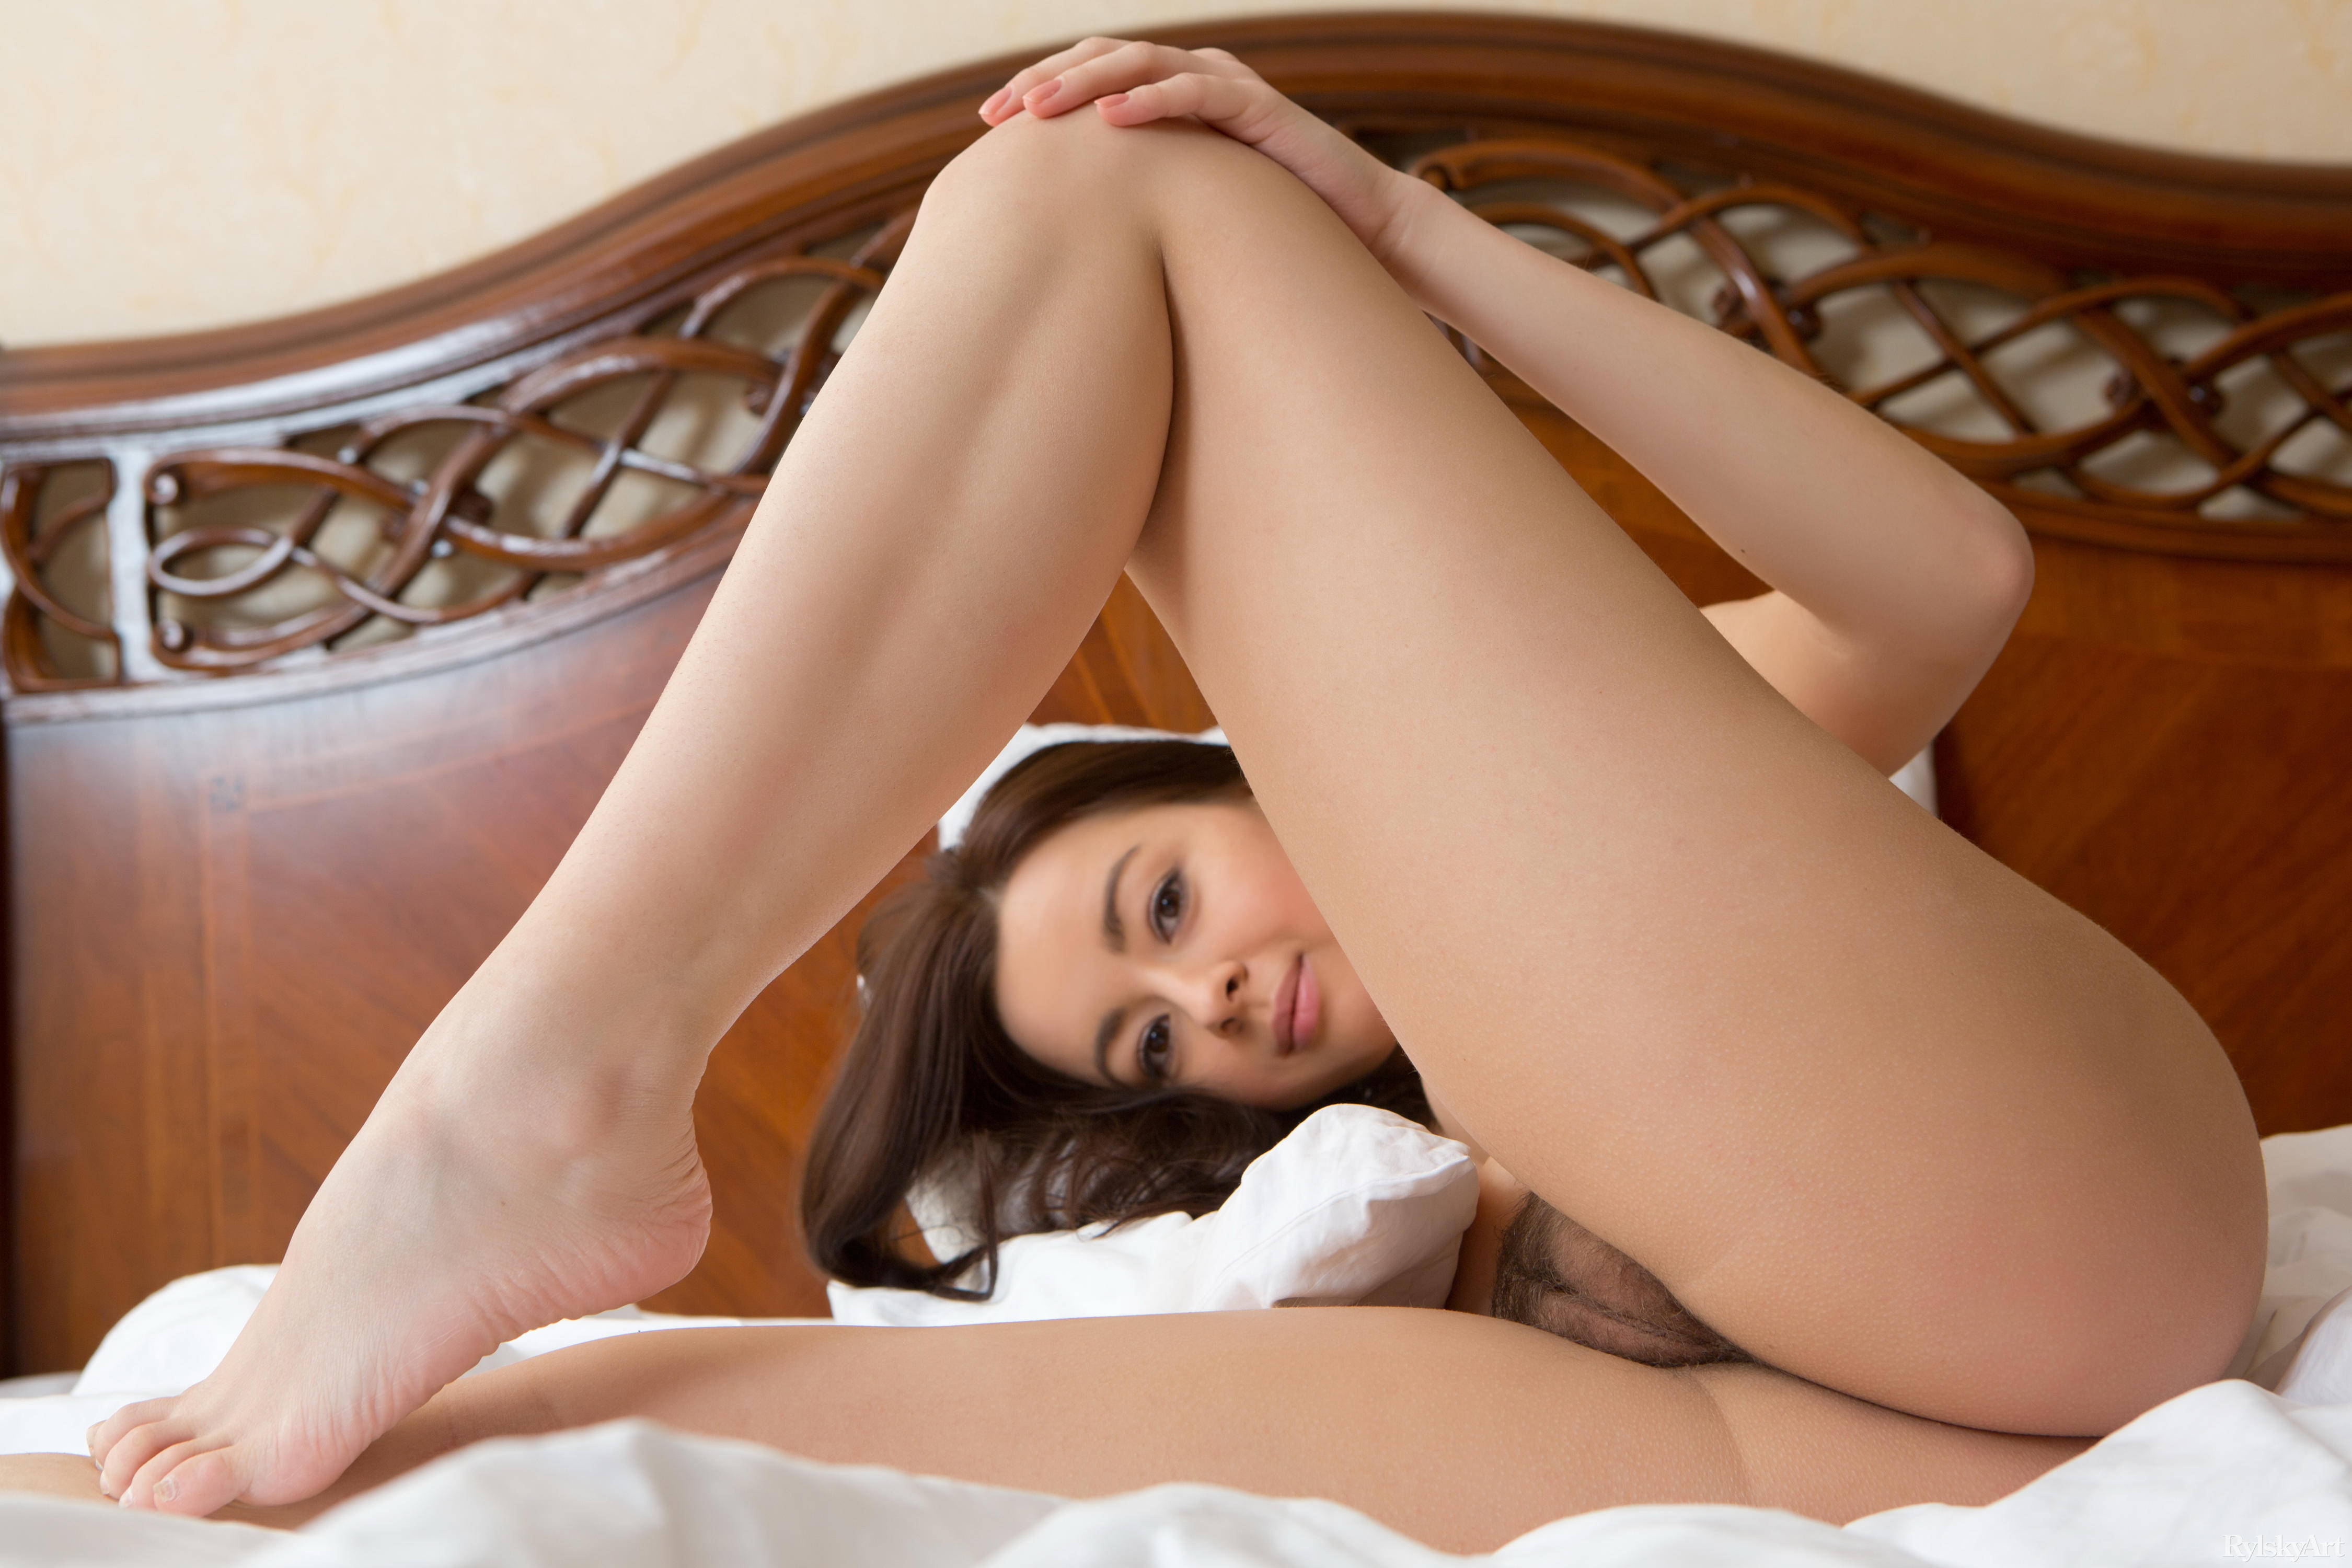 That necessary, hot nude brunettes spread on bed